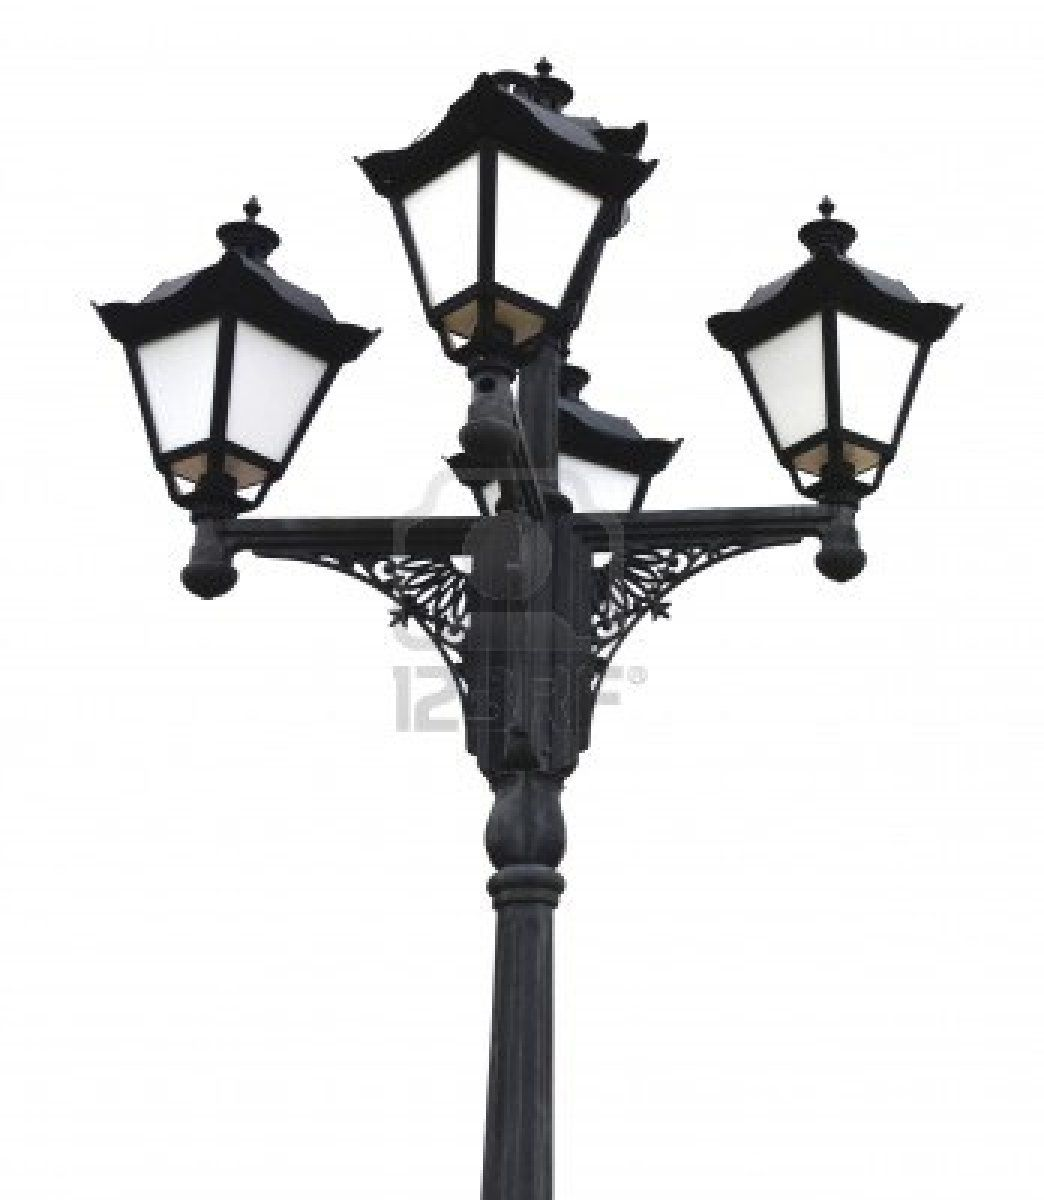 Quaternary Old Fashioned Street Lamp Post Street Lamp Post Lamp Post Street Lamp